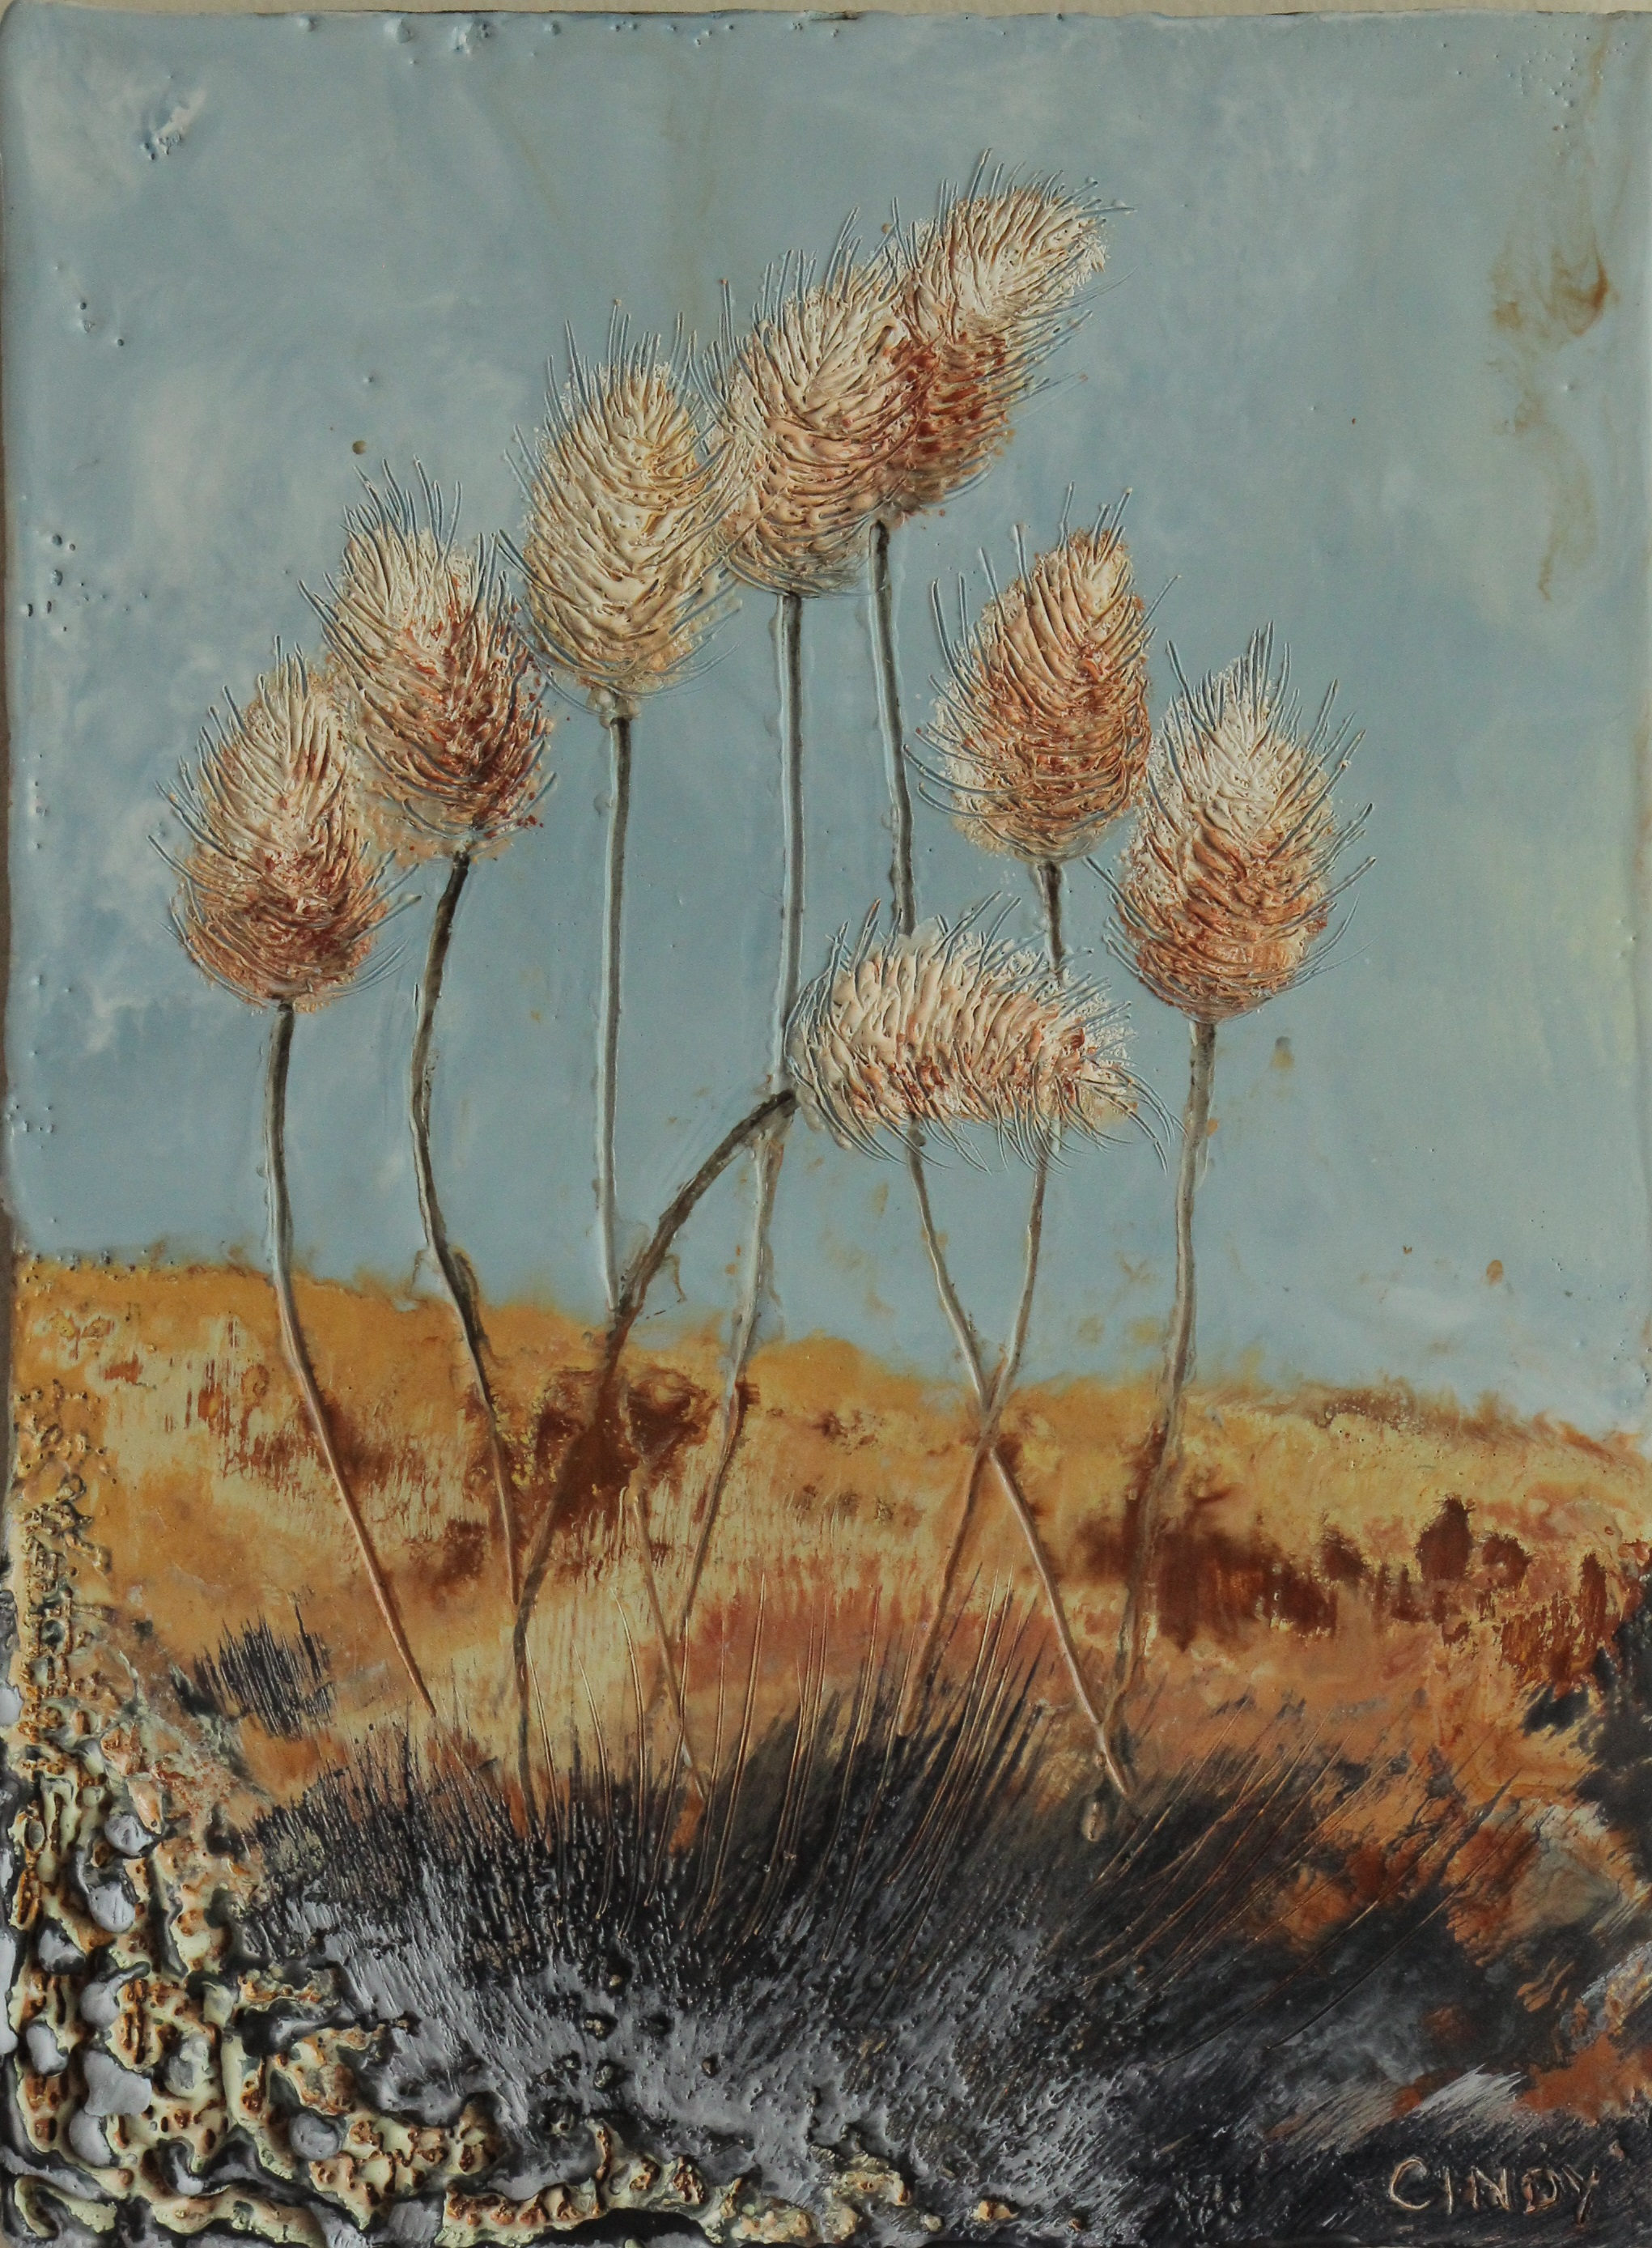 """Bunny Tails""   5x7"" framed  encaustic mixed media on board  DONATED  2014"